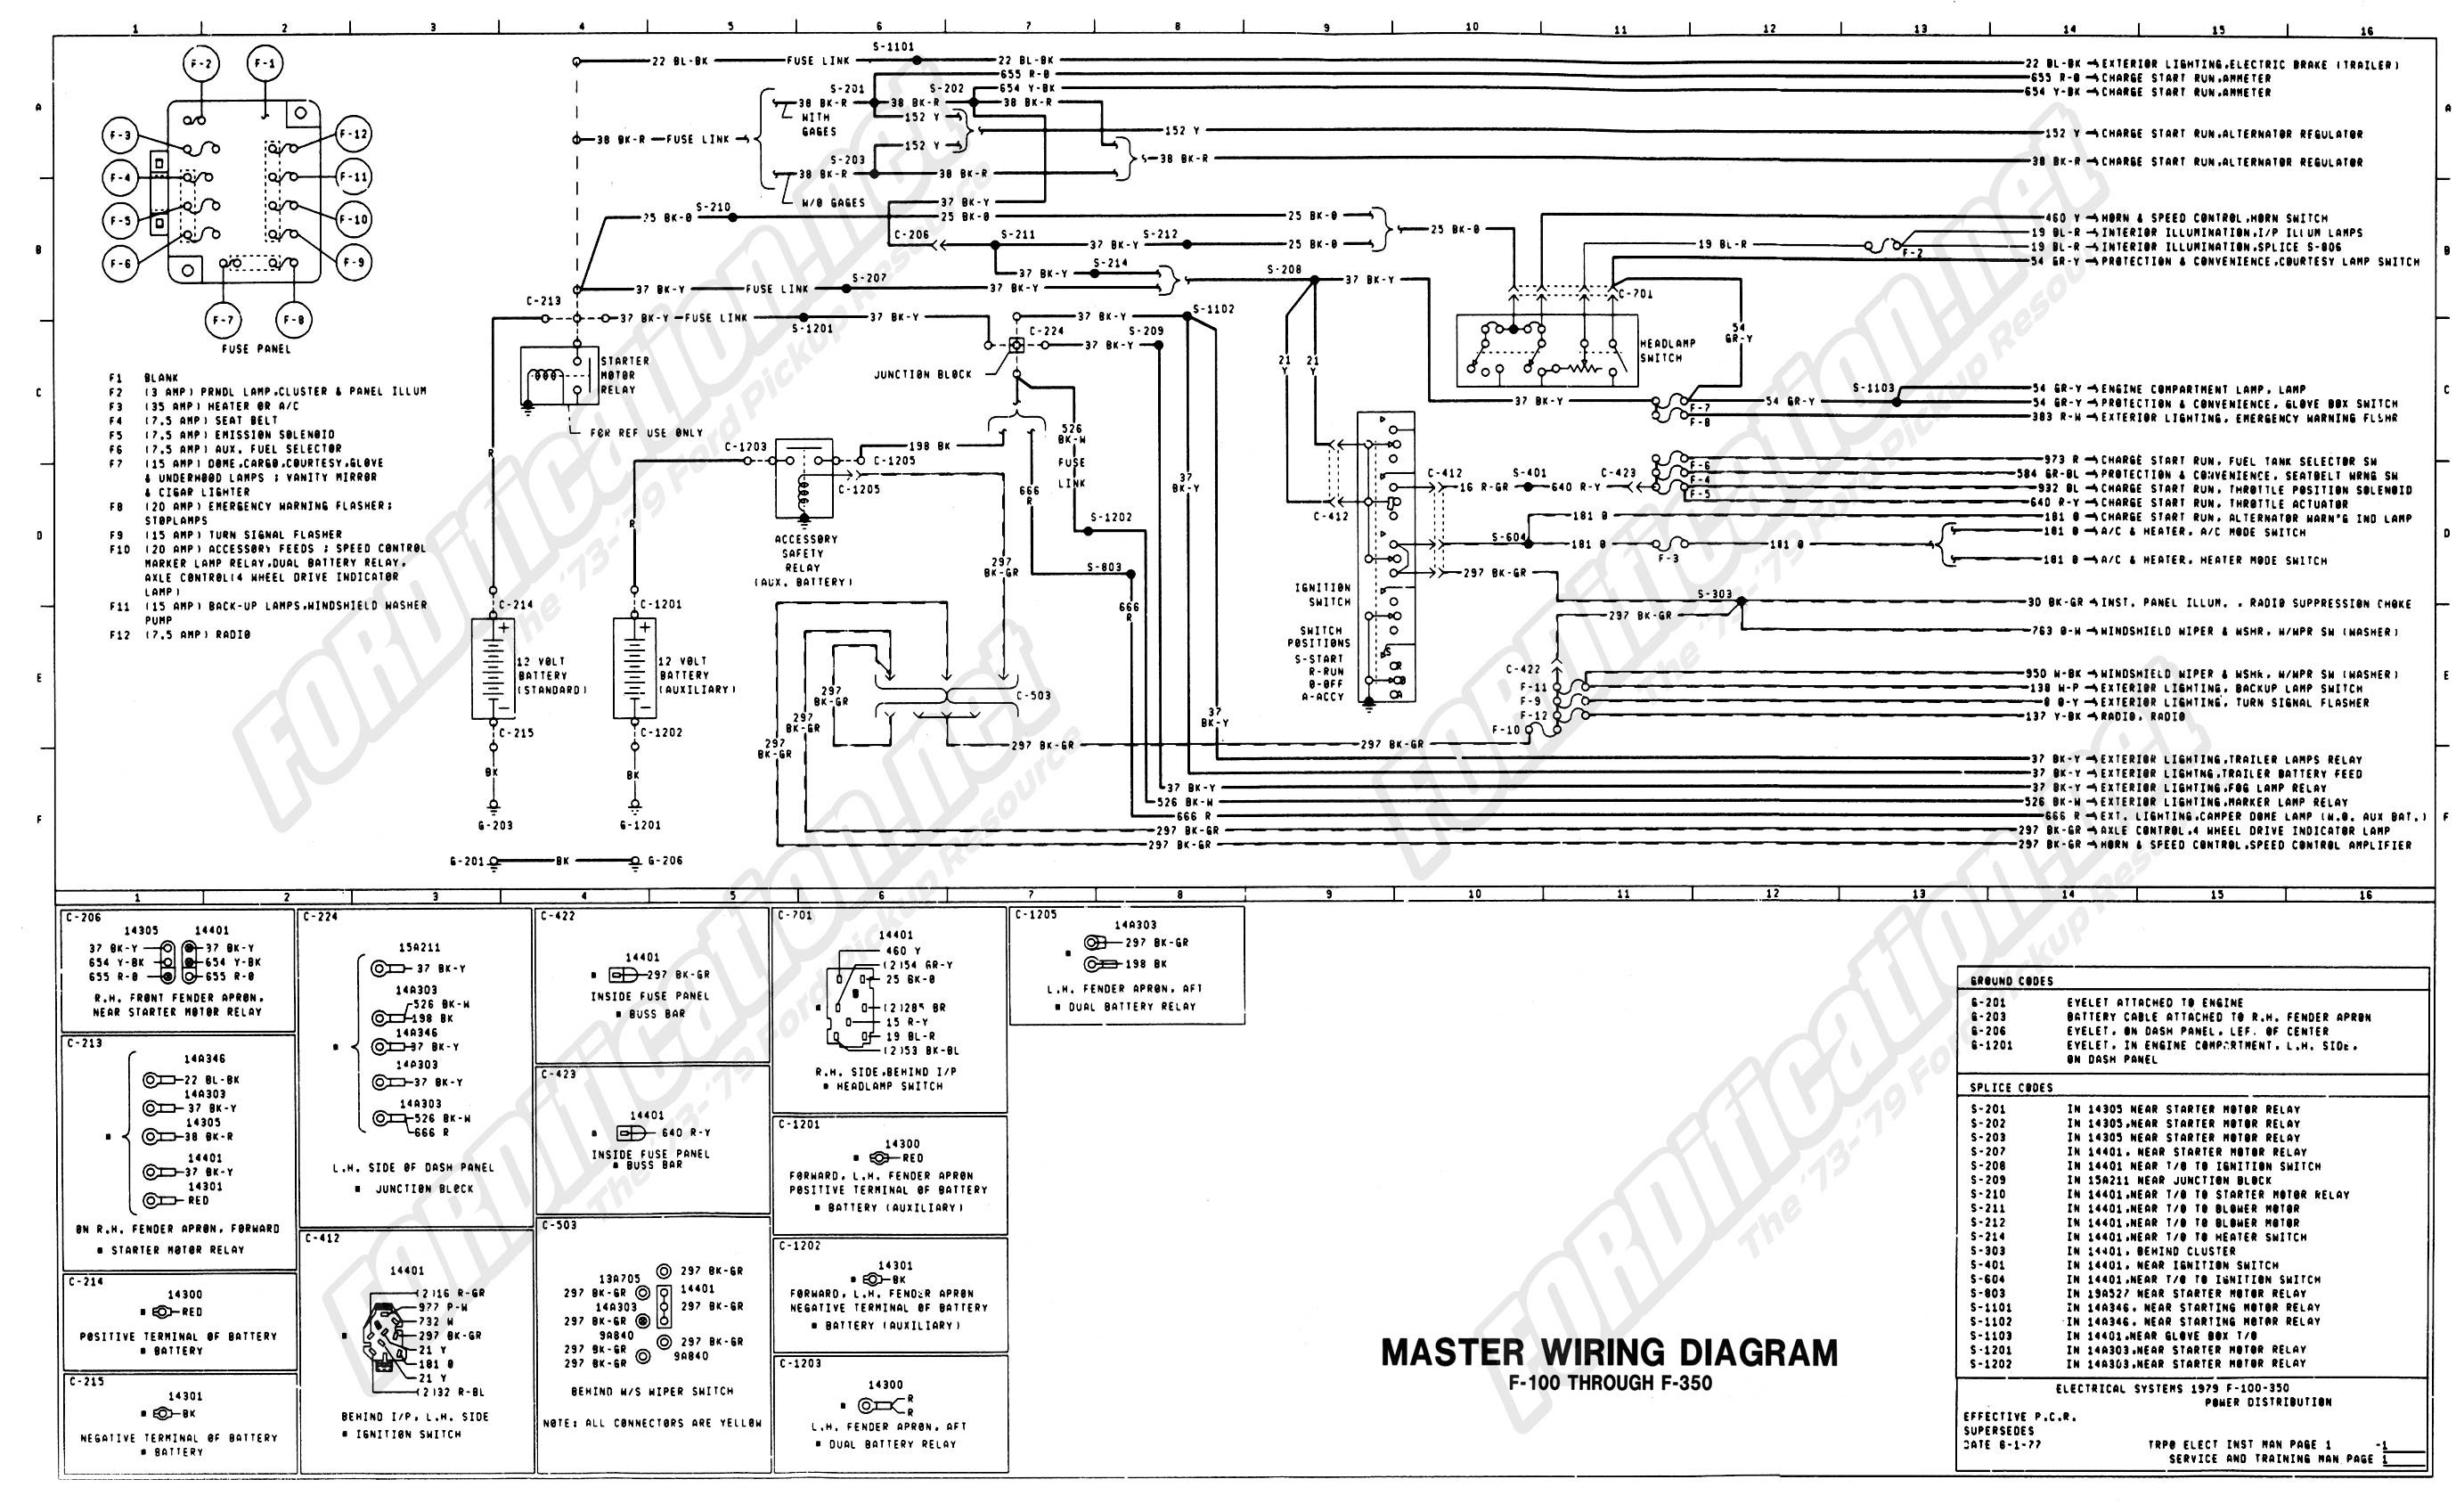 Wiring Diagram for Truck to Trailer Elegant Trailer Light Wiring Diagram Diagram Of Wiring Diagram for Truck to Trailer